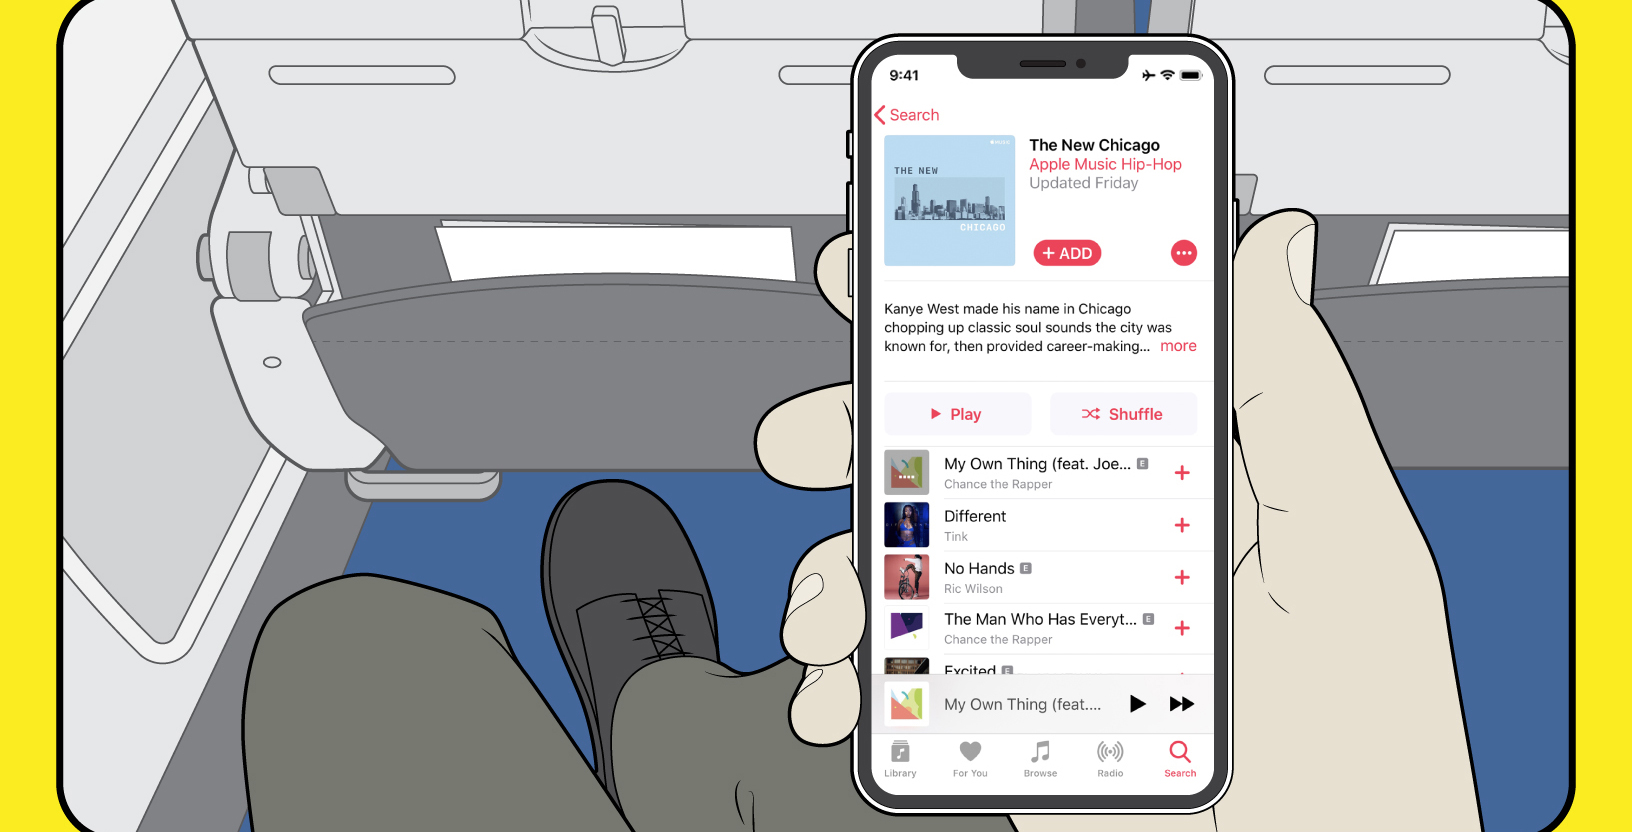 Apple Music subscribers can now stream music on United States  flights for free